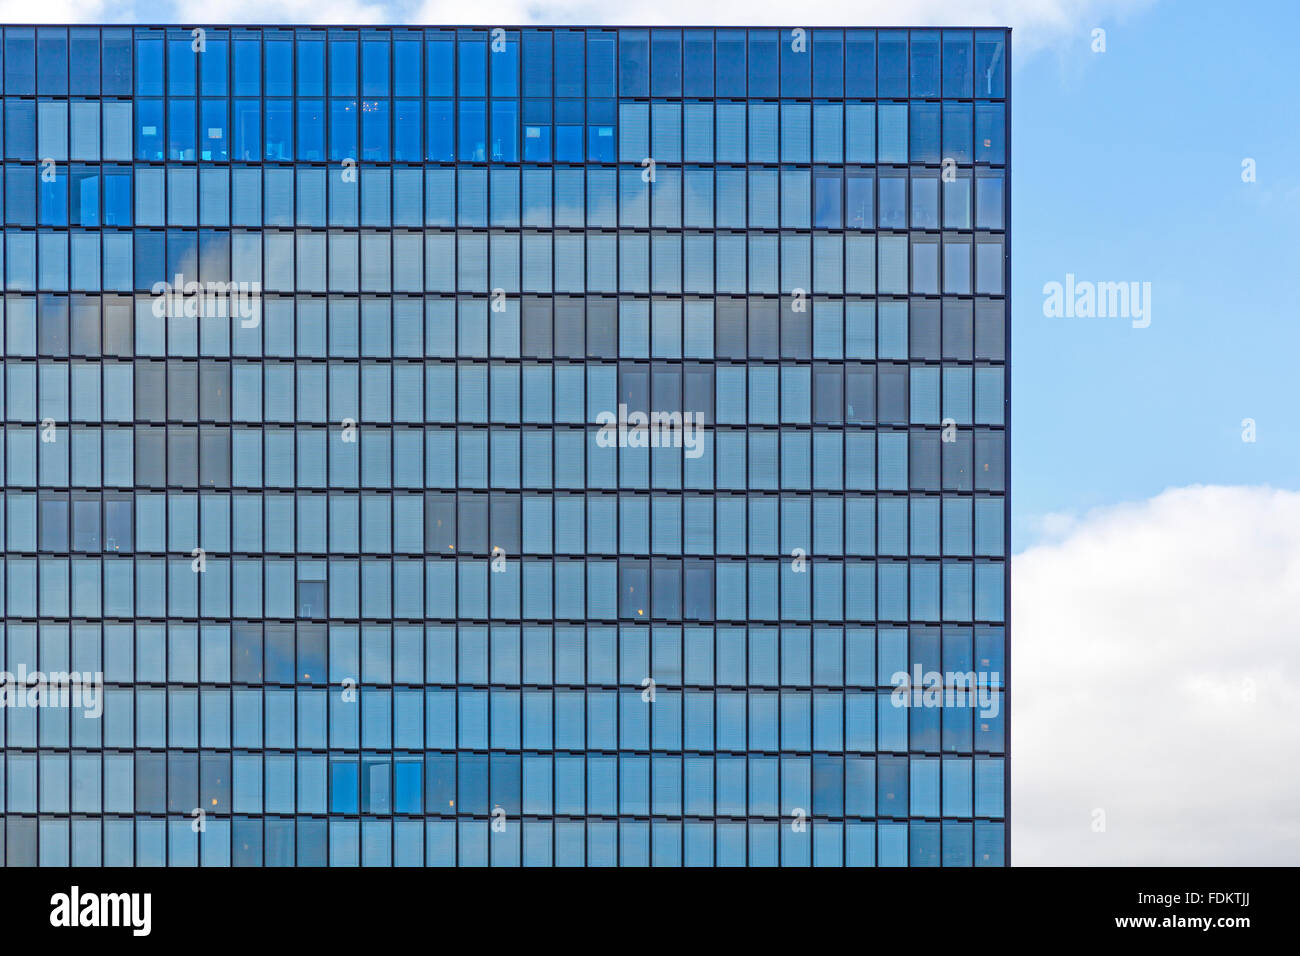 office building,glass facade - Stock Image